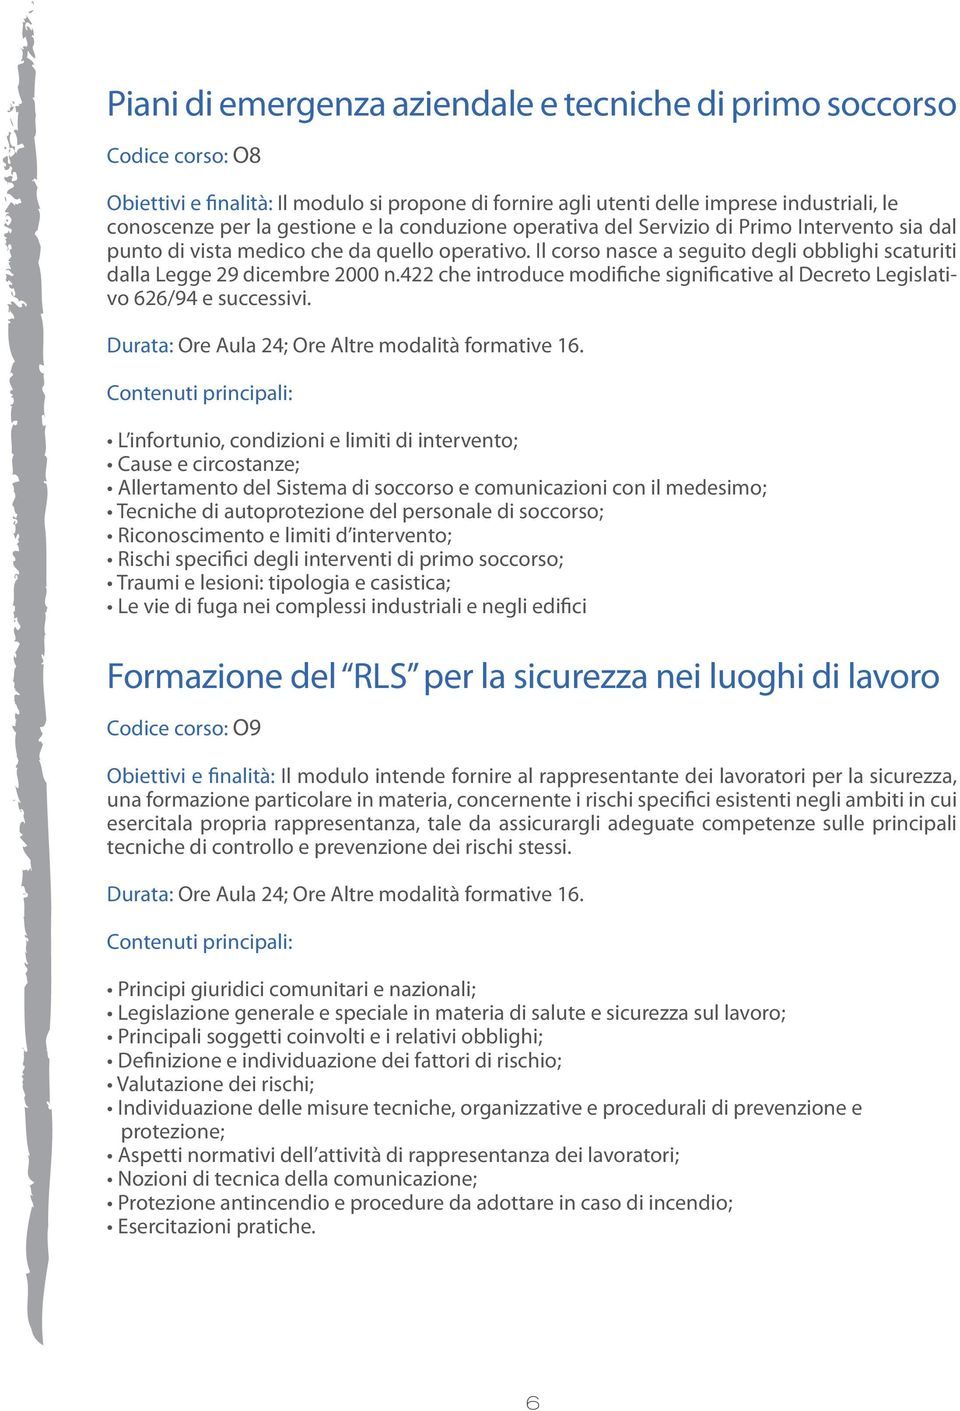 422 che introduce modifiche significative al Decreto Legislativo 626/94 e successivi.